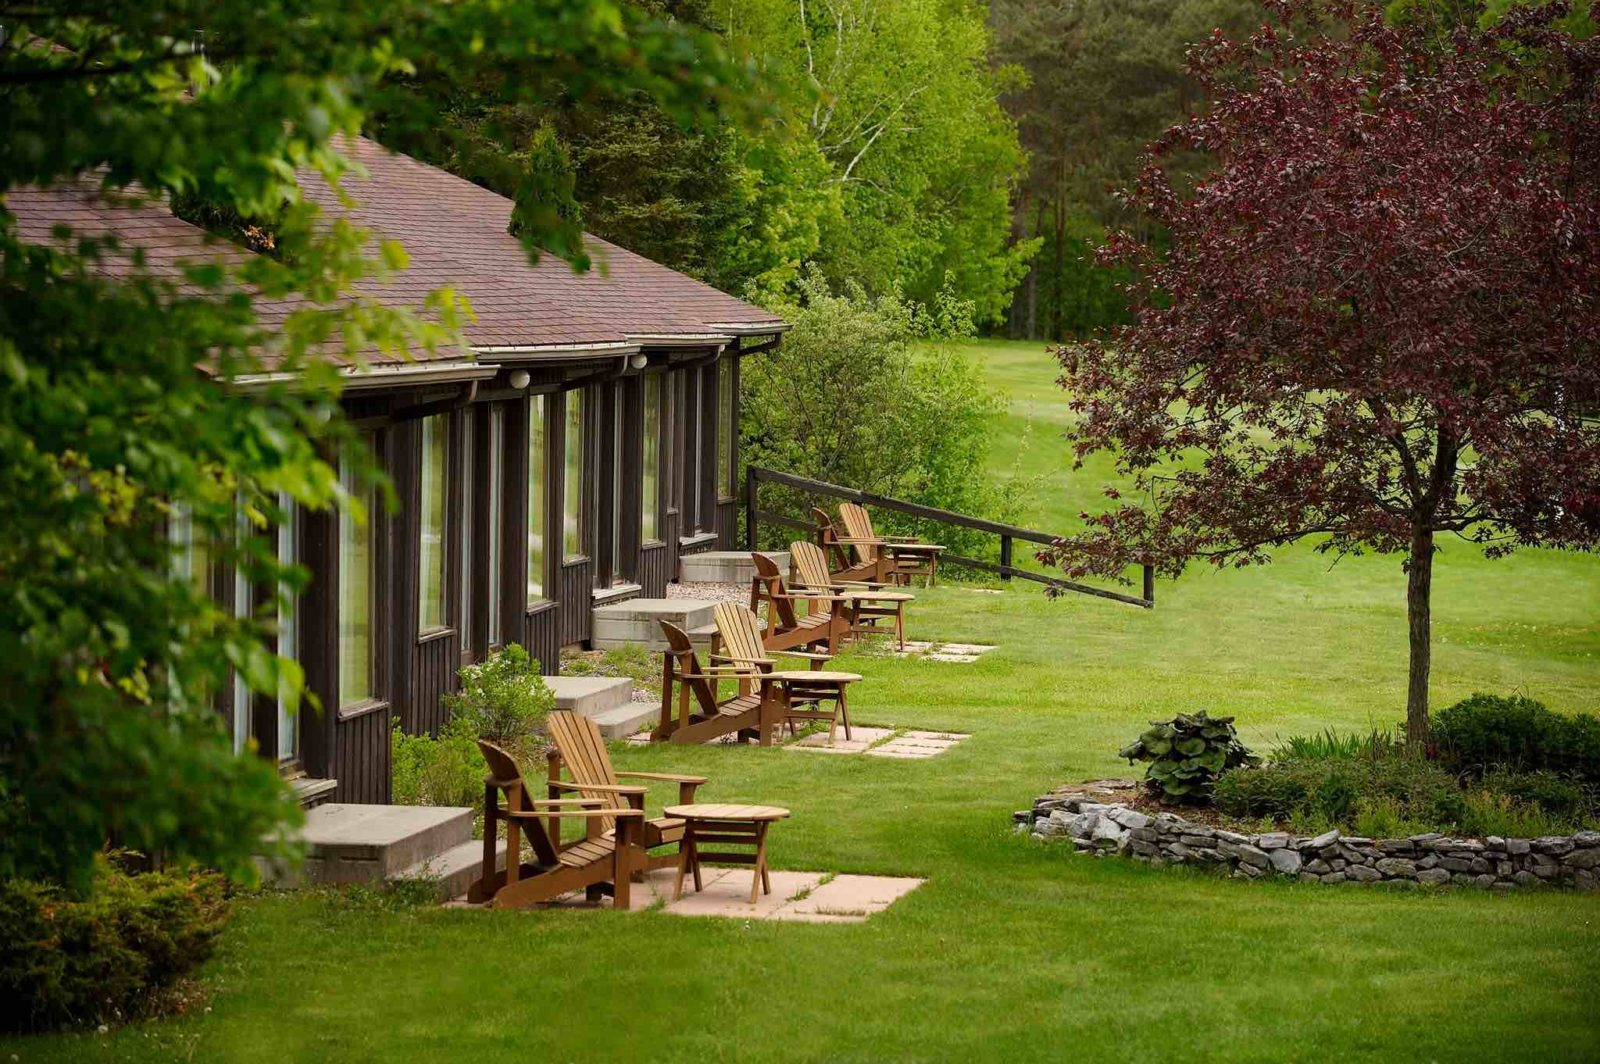 Pine Stone Resort showing cabins and Muskoka chairs in summer